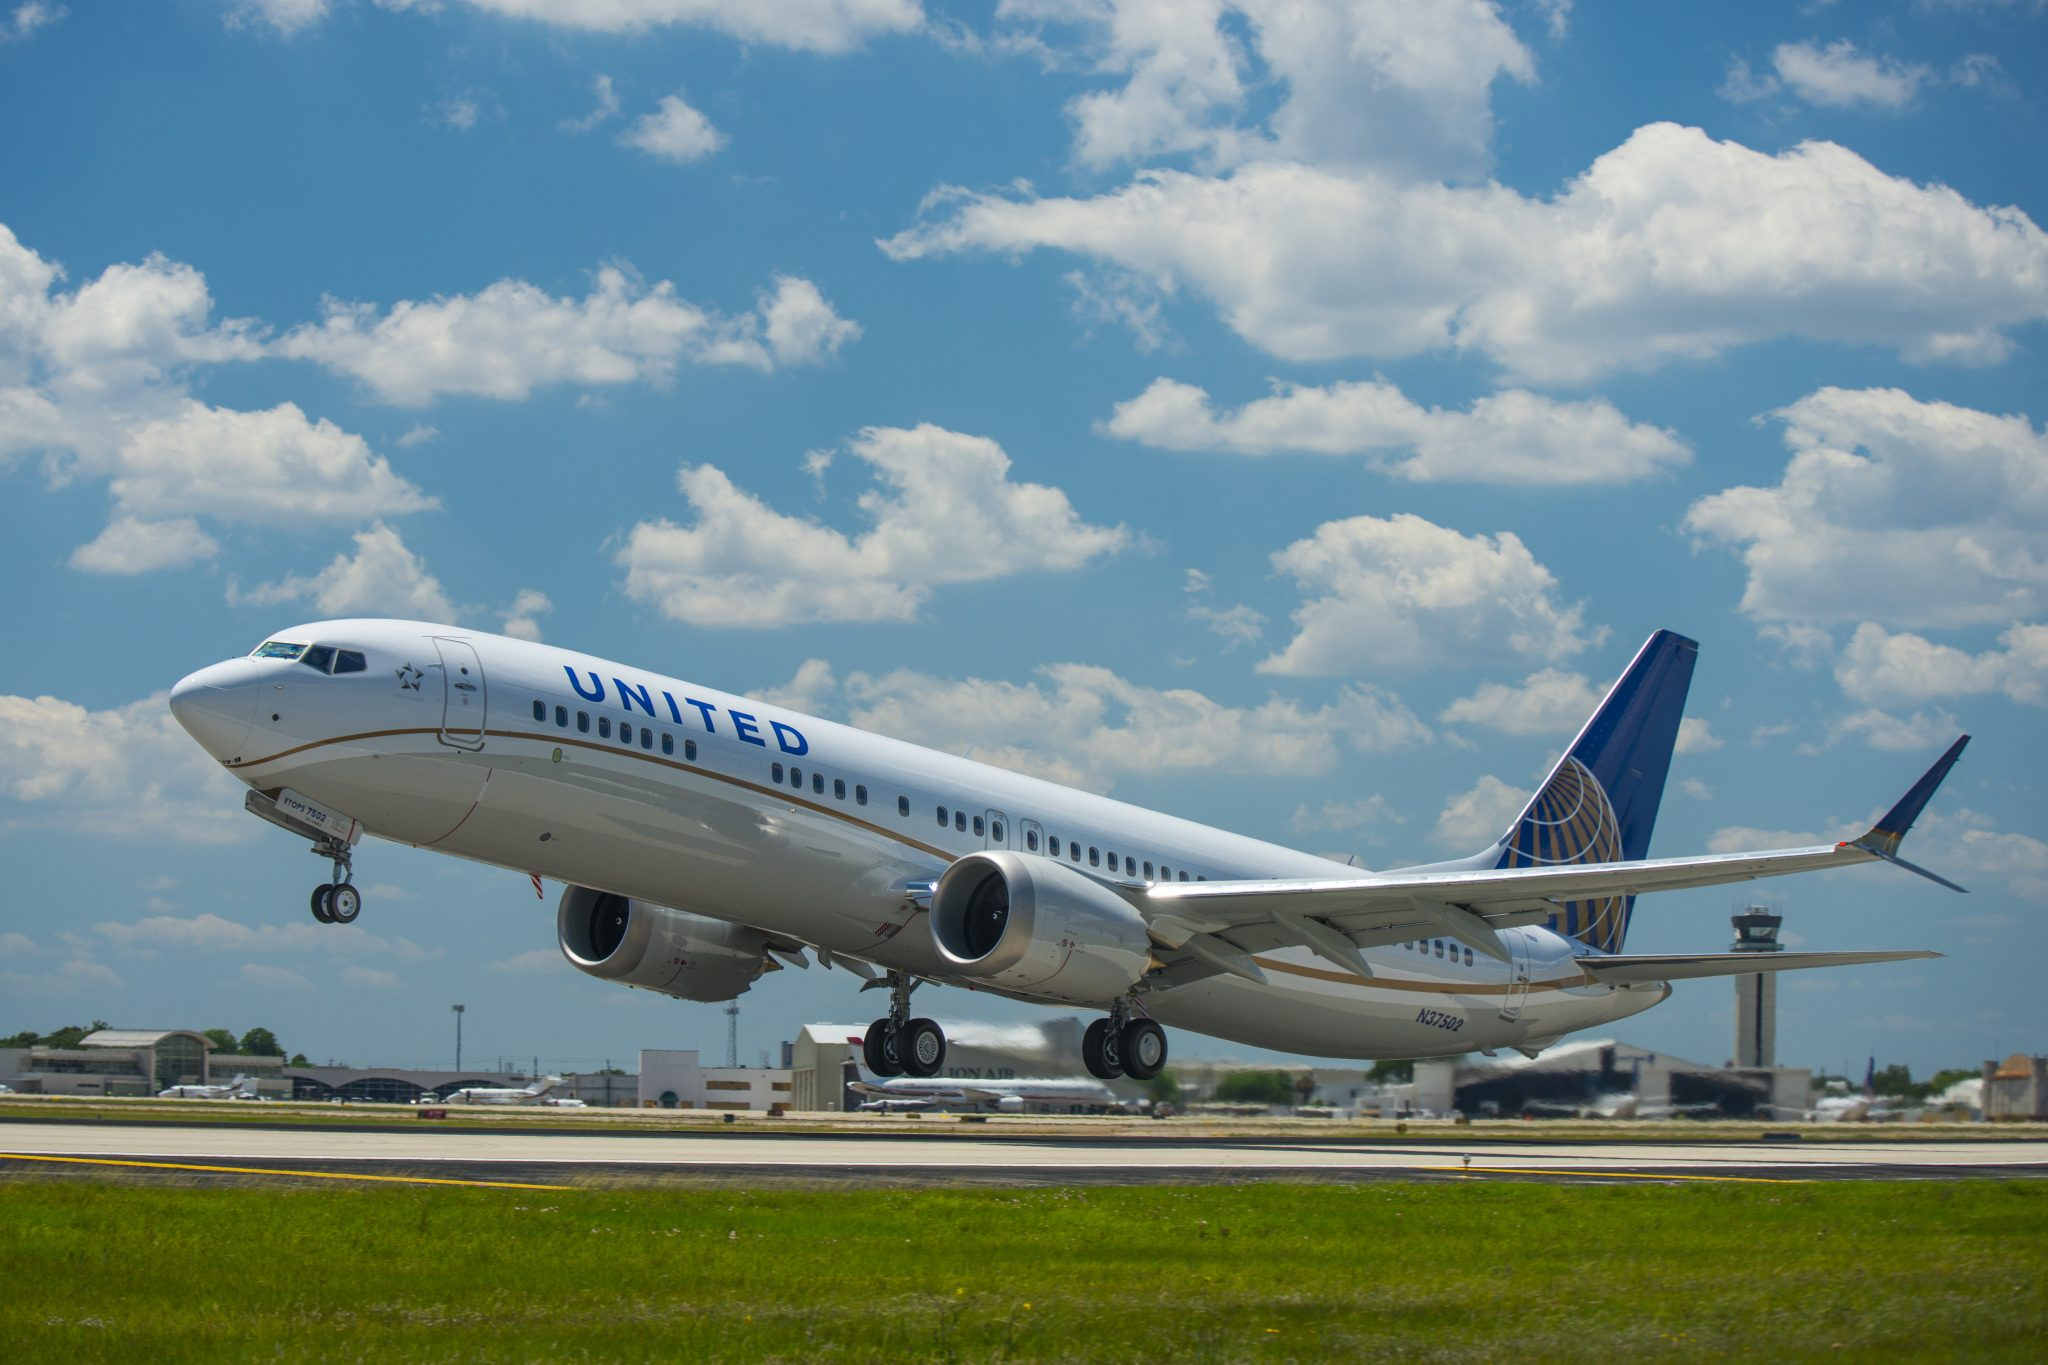 Brand USA y United Airlines firman un acuerdo global de patrocinio